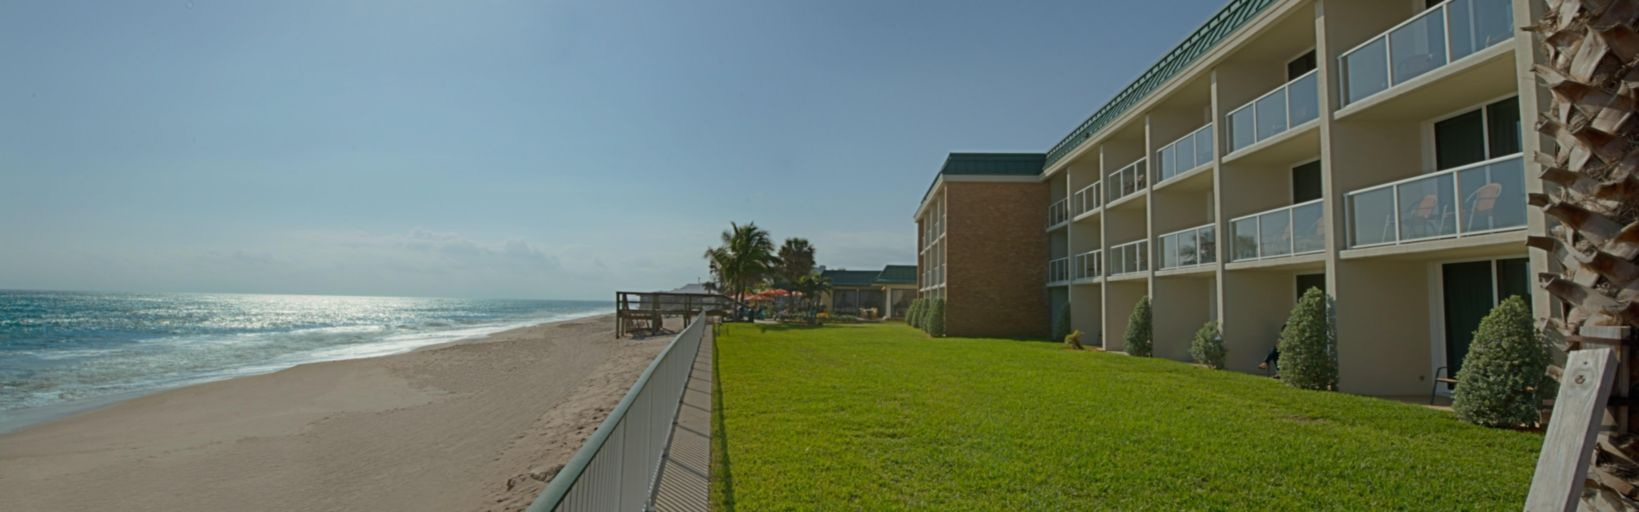 Holiday Inn Suites Vero Beach Oceanside